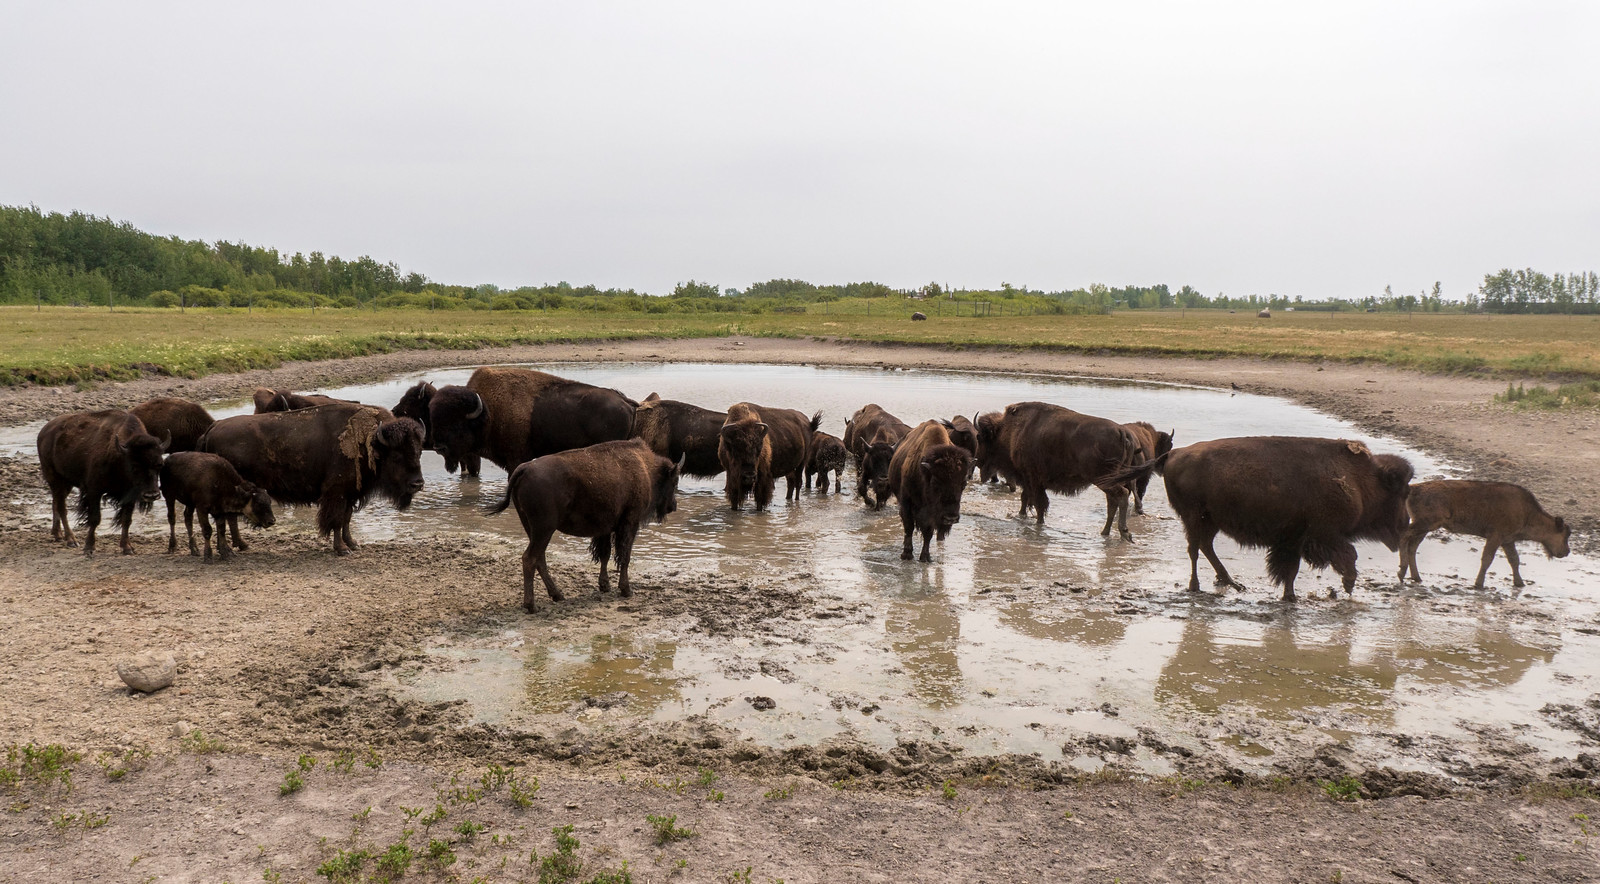 Bison Safari at FortWhyte Alive - Things to Do in Winnipeg: A Couples Getaway Guide